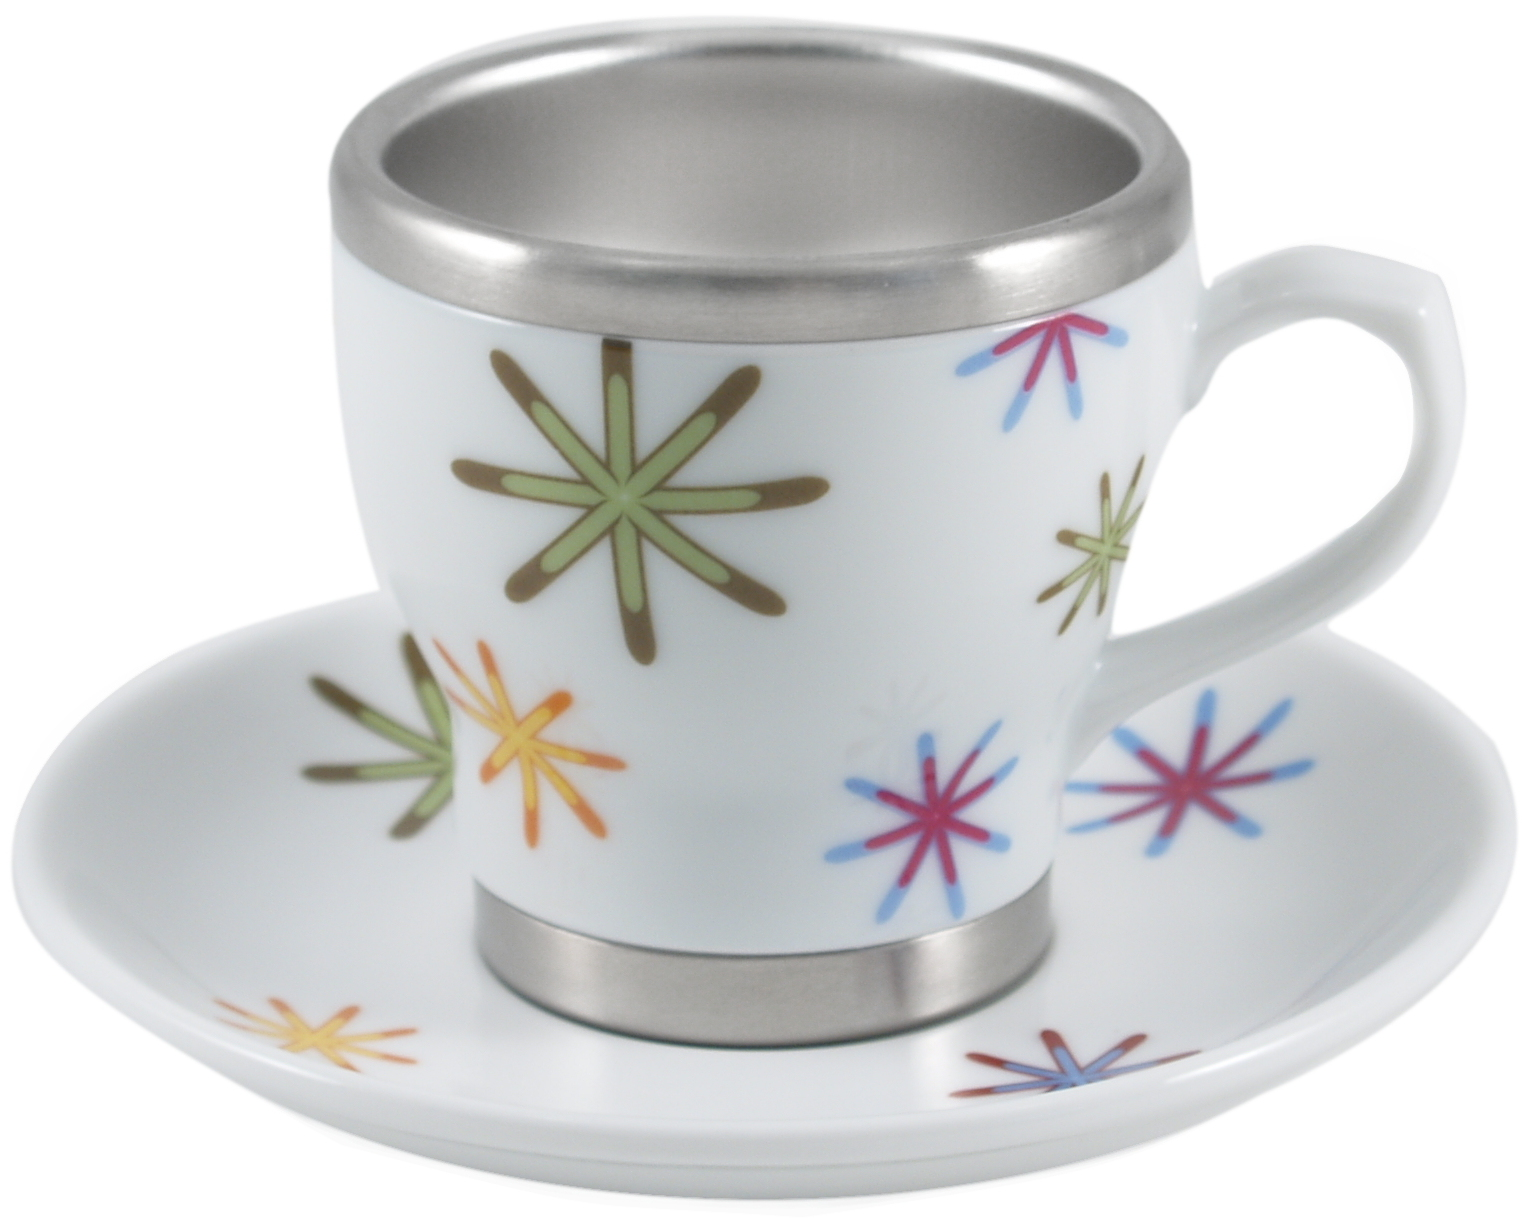 Pearl Cafe Stainless Steel and Porcelain Rainbow Stars Espresso Cup and Saucer Set, Service for 4